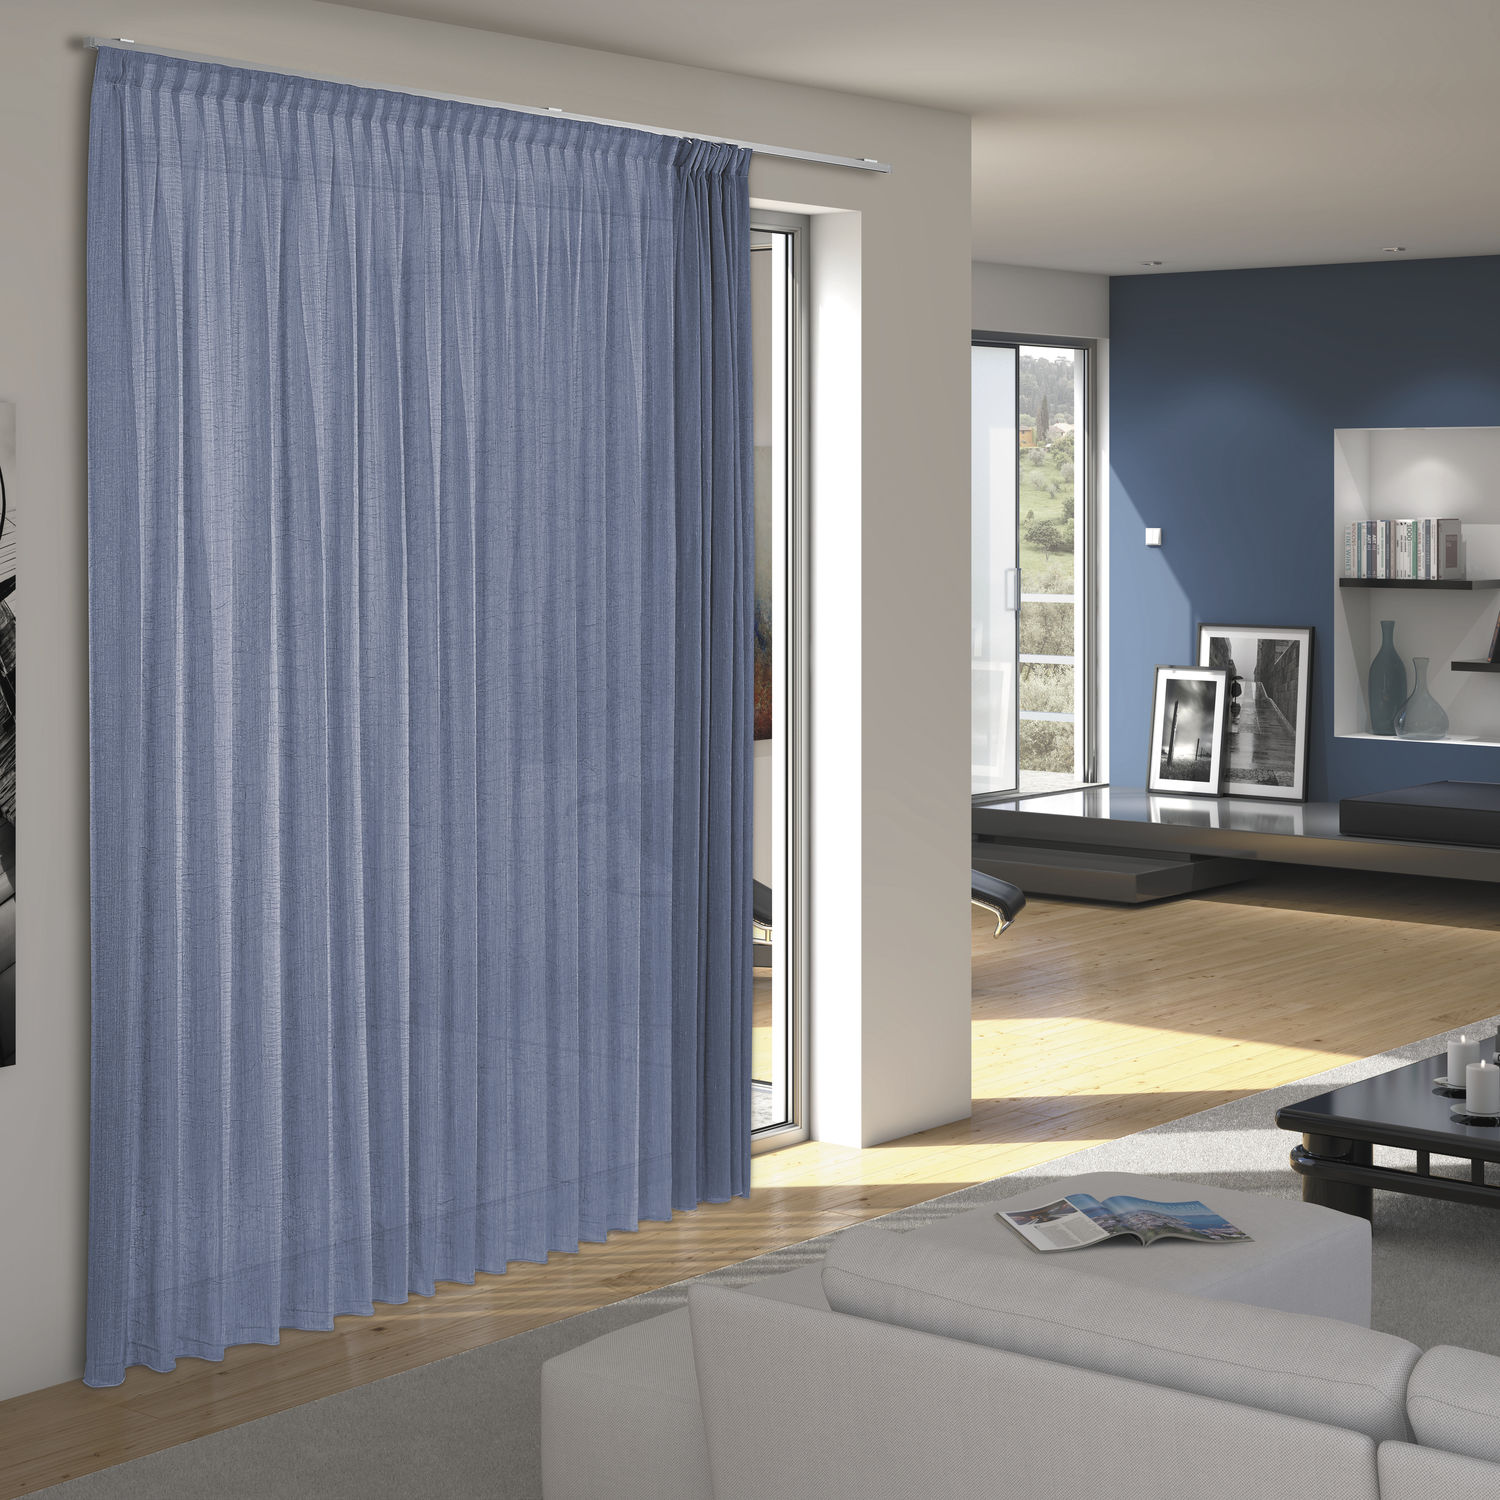 Wall mounted curtain track   manual   for drapes   window   KUADRO. Wall mounted curtain track   manual   for drapes   window   KUADRO